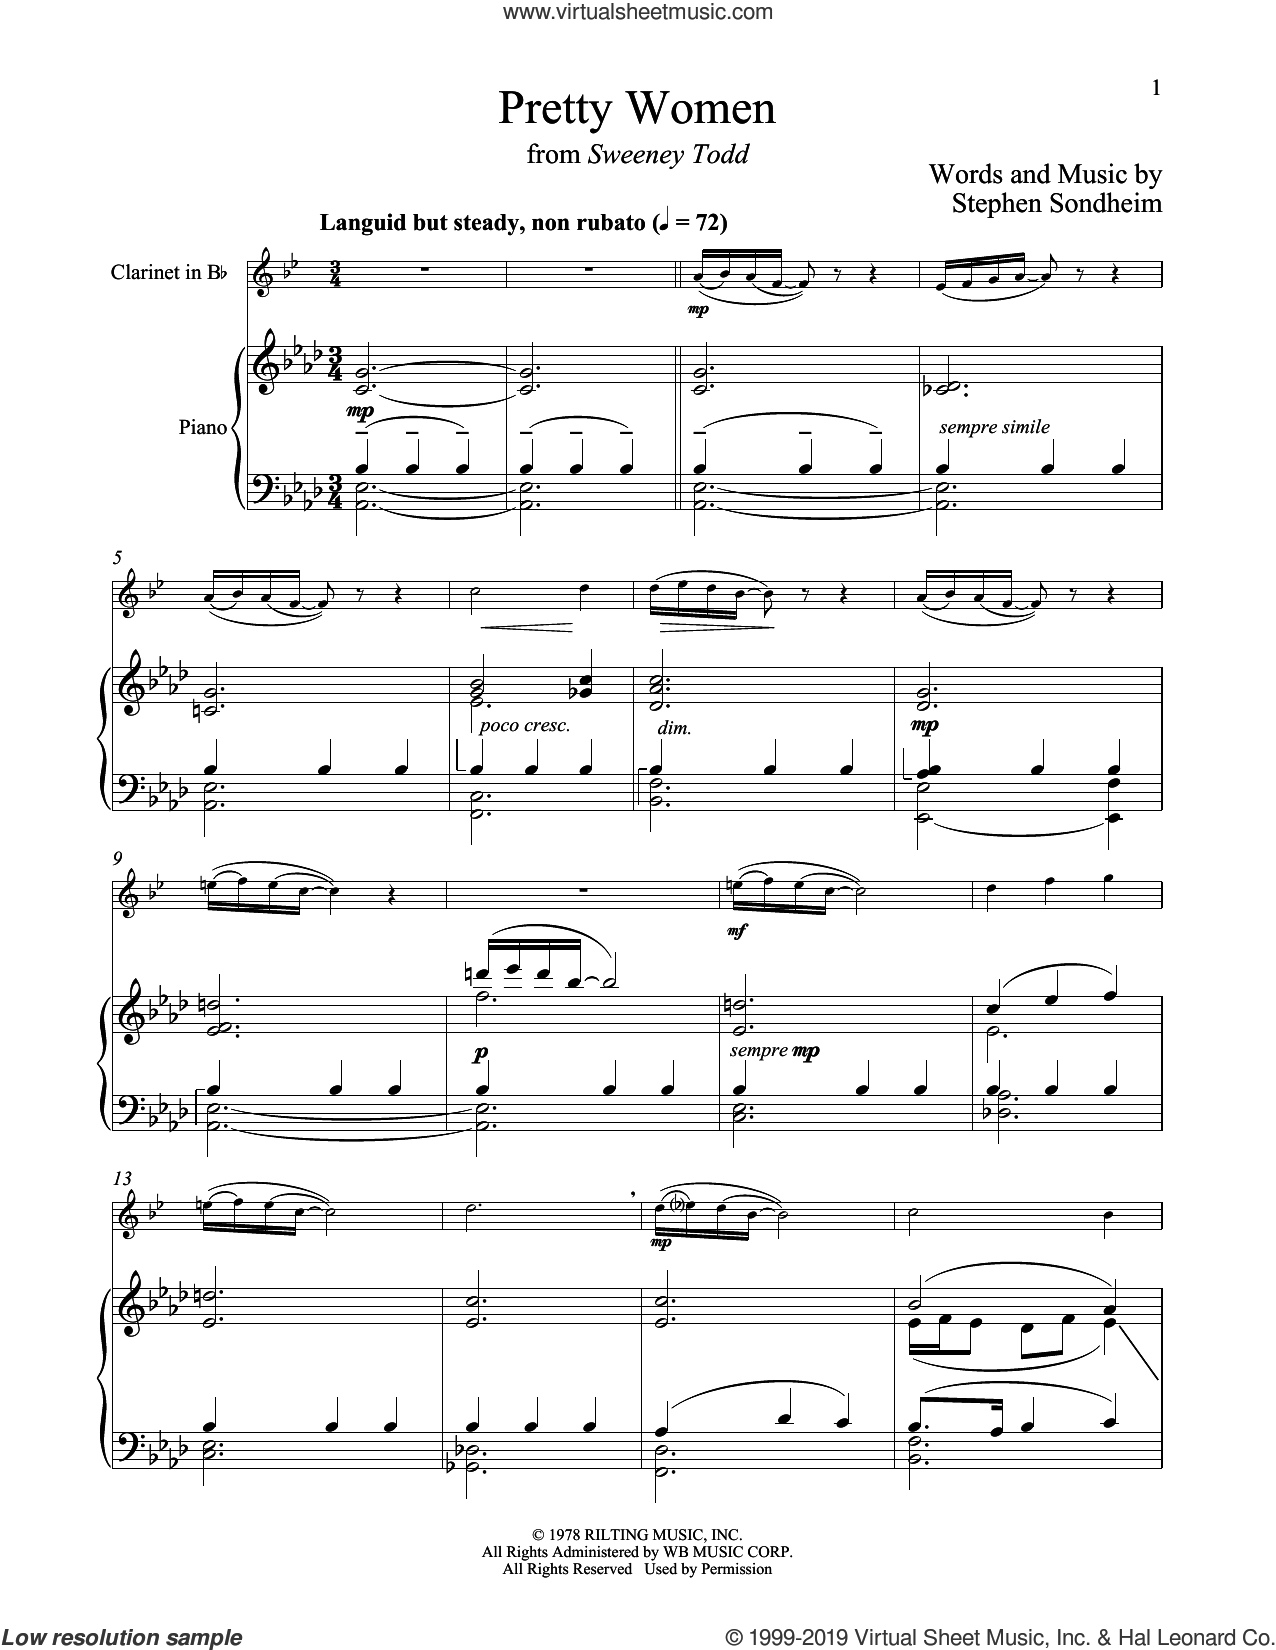 Pretty Women (from Sweeney Todd) sheet music for clarinet and piano by Stephen Sondheim, intermediate skill level